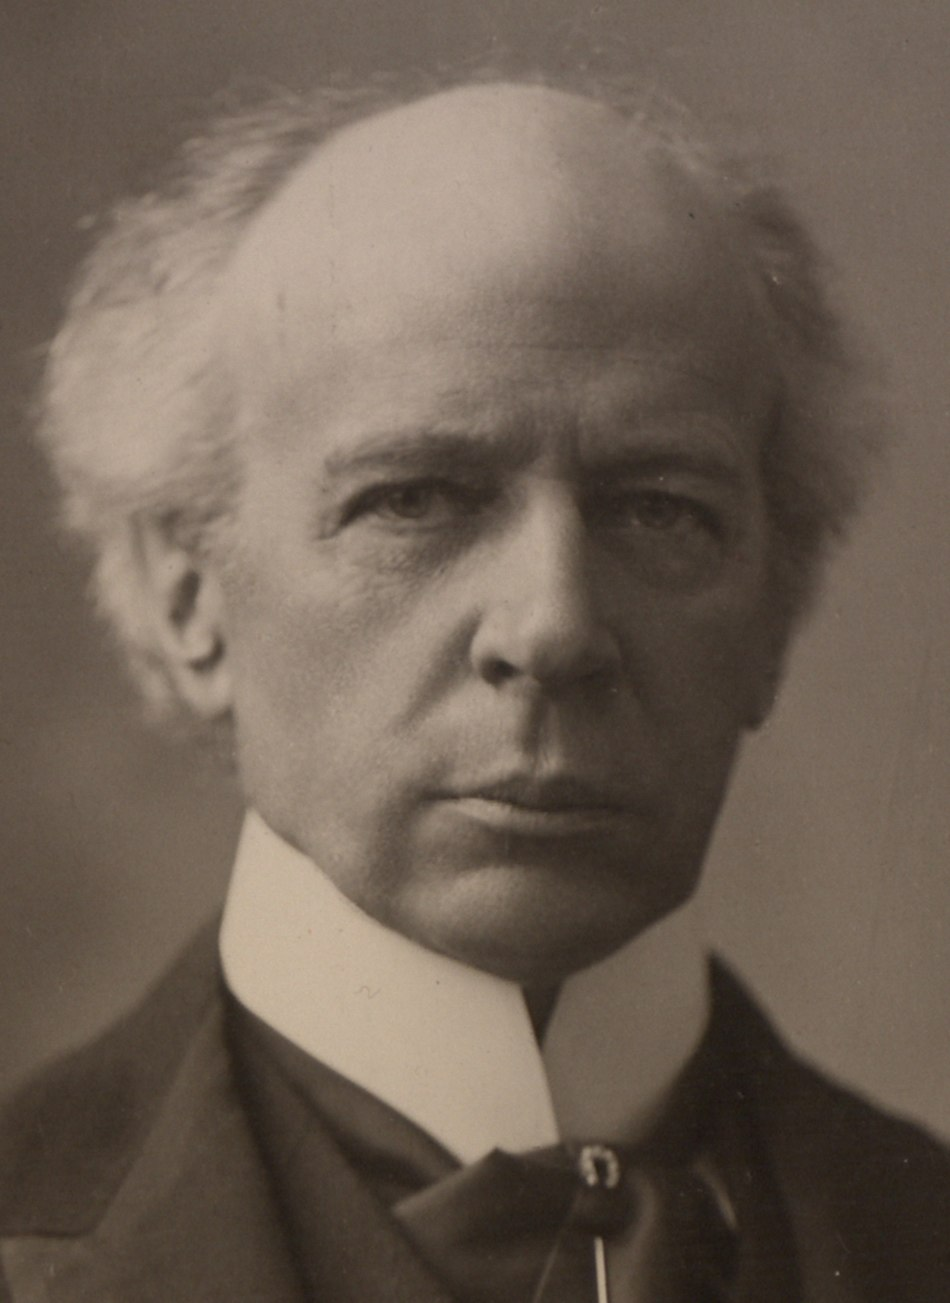 The Honourable Sir Wilfrid Laurier Photo C (HS85-10-16873) - tight crop